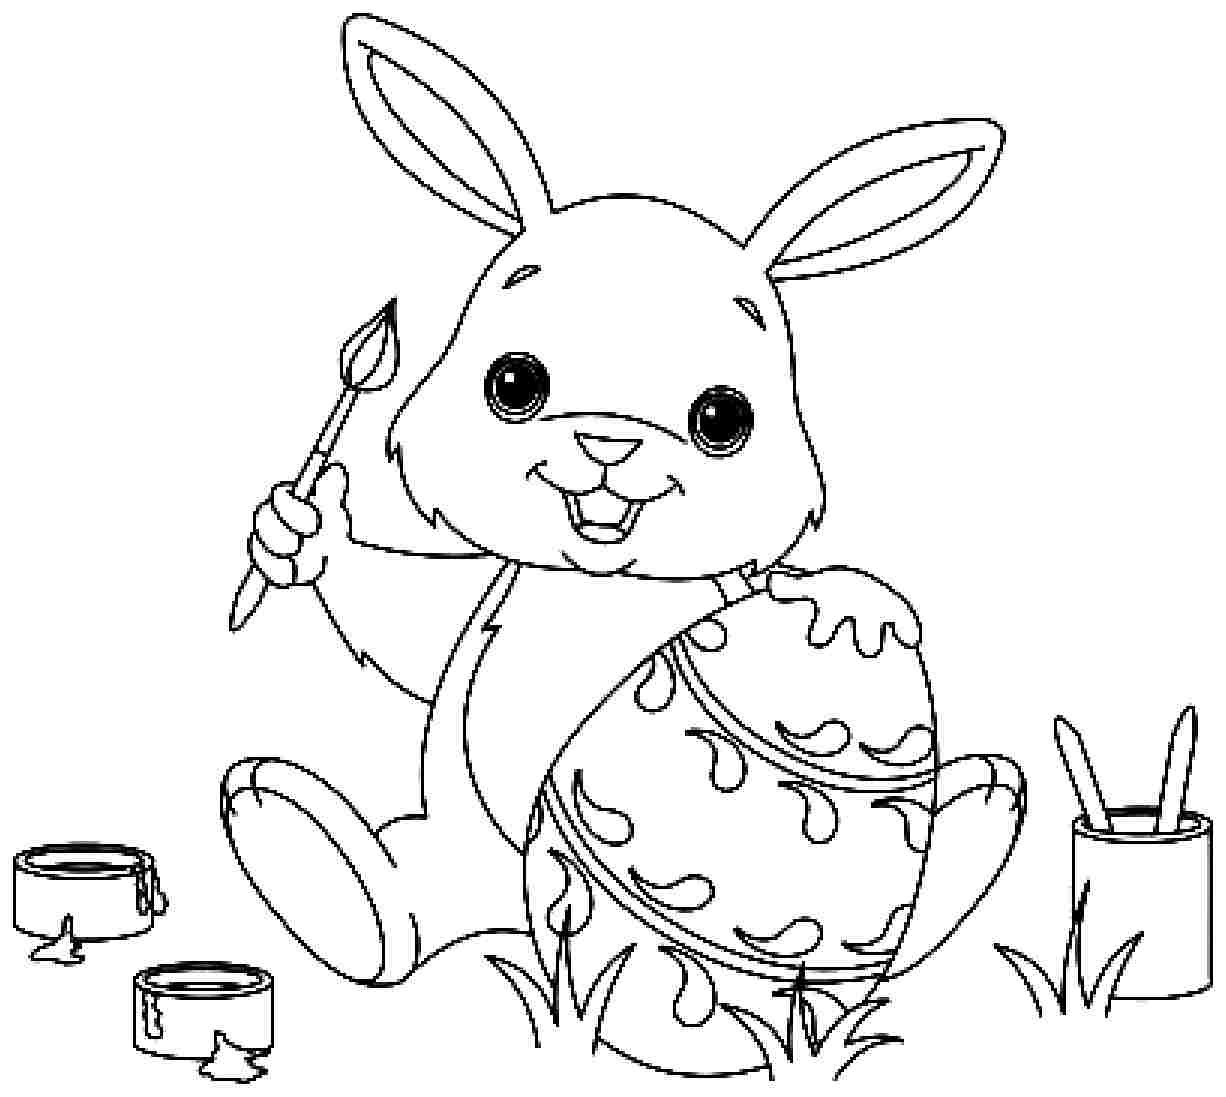 Best ideas about Free Coloring Pages Of The Easter Bunny . Save or Pin 35 Best Easter Bunny Coloring Pages – WeNeedFun Now.